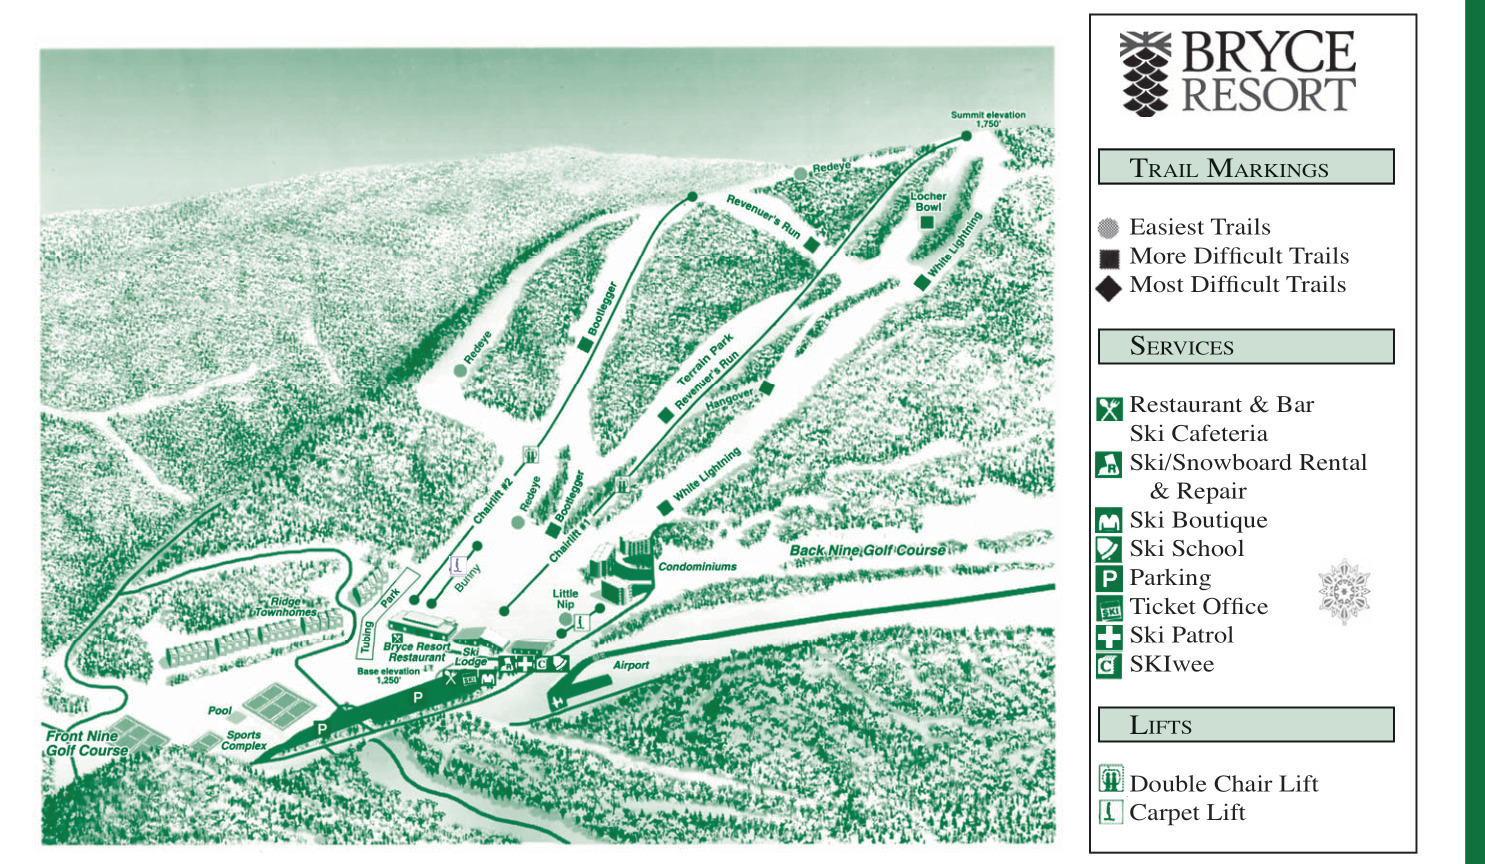 Bryce Resort Piste / Trail Map